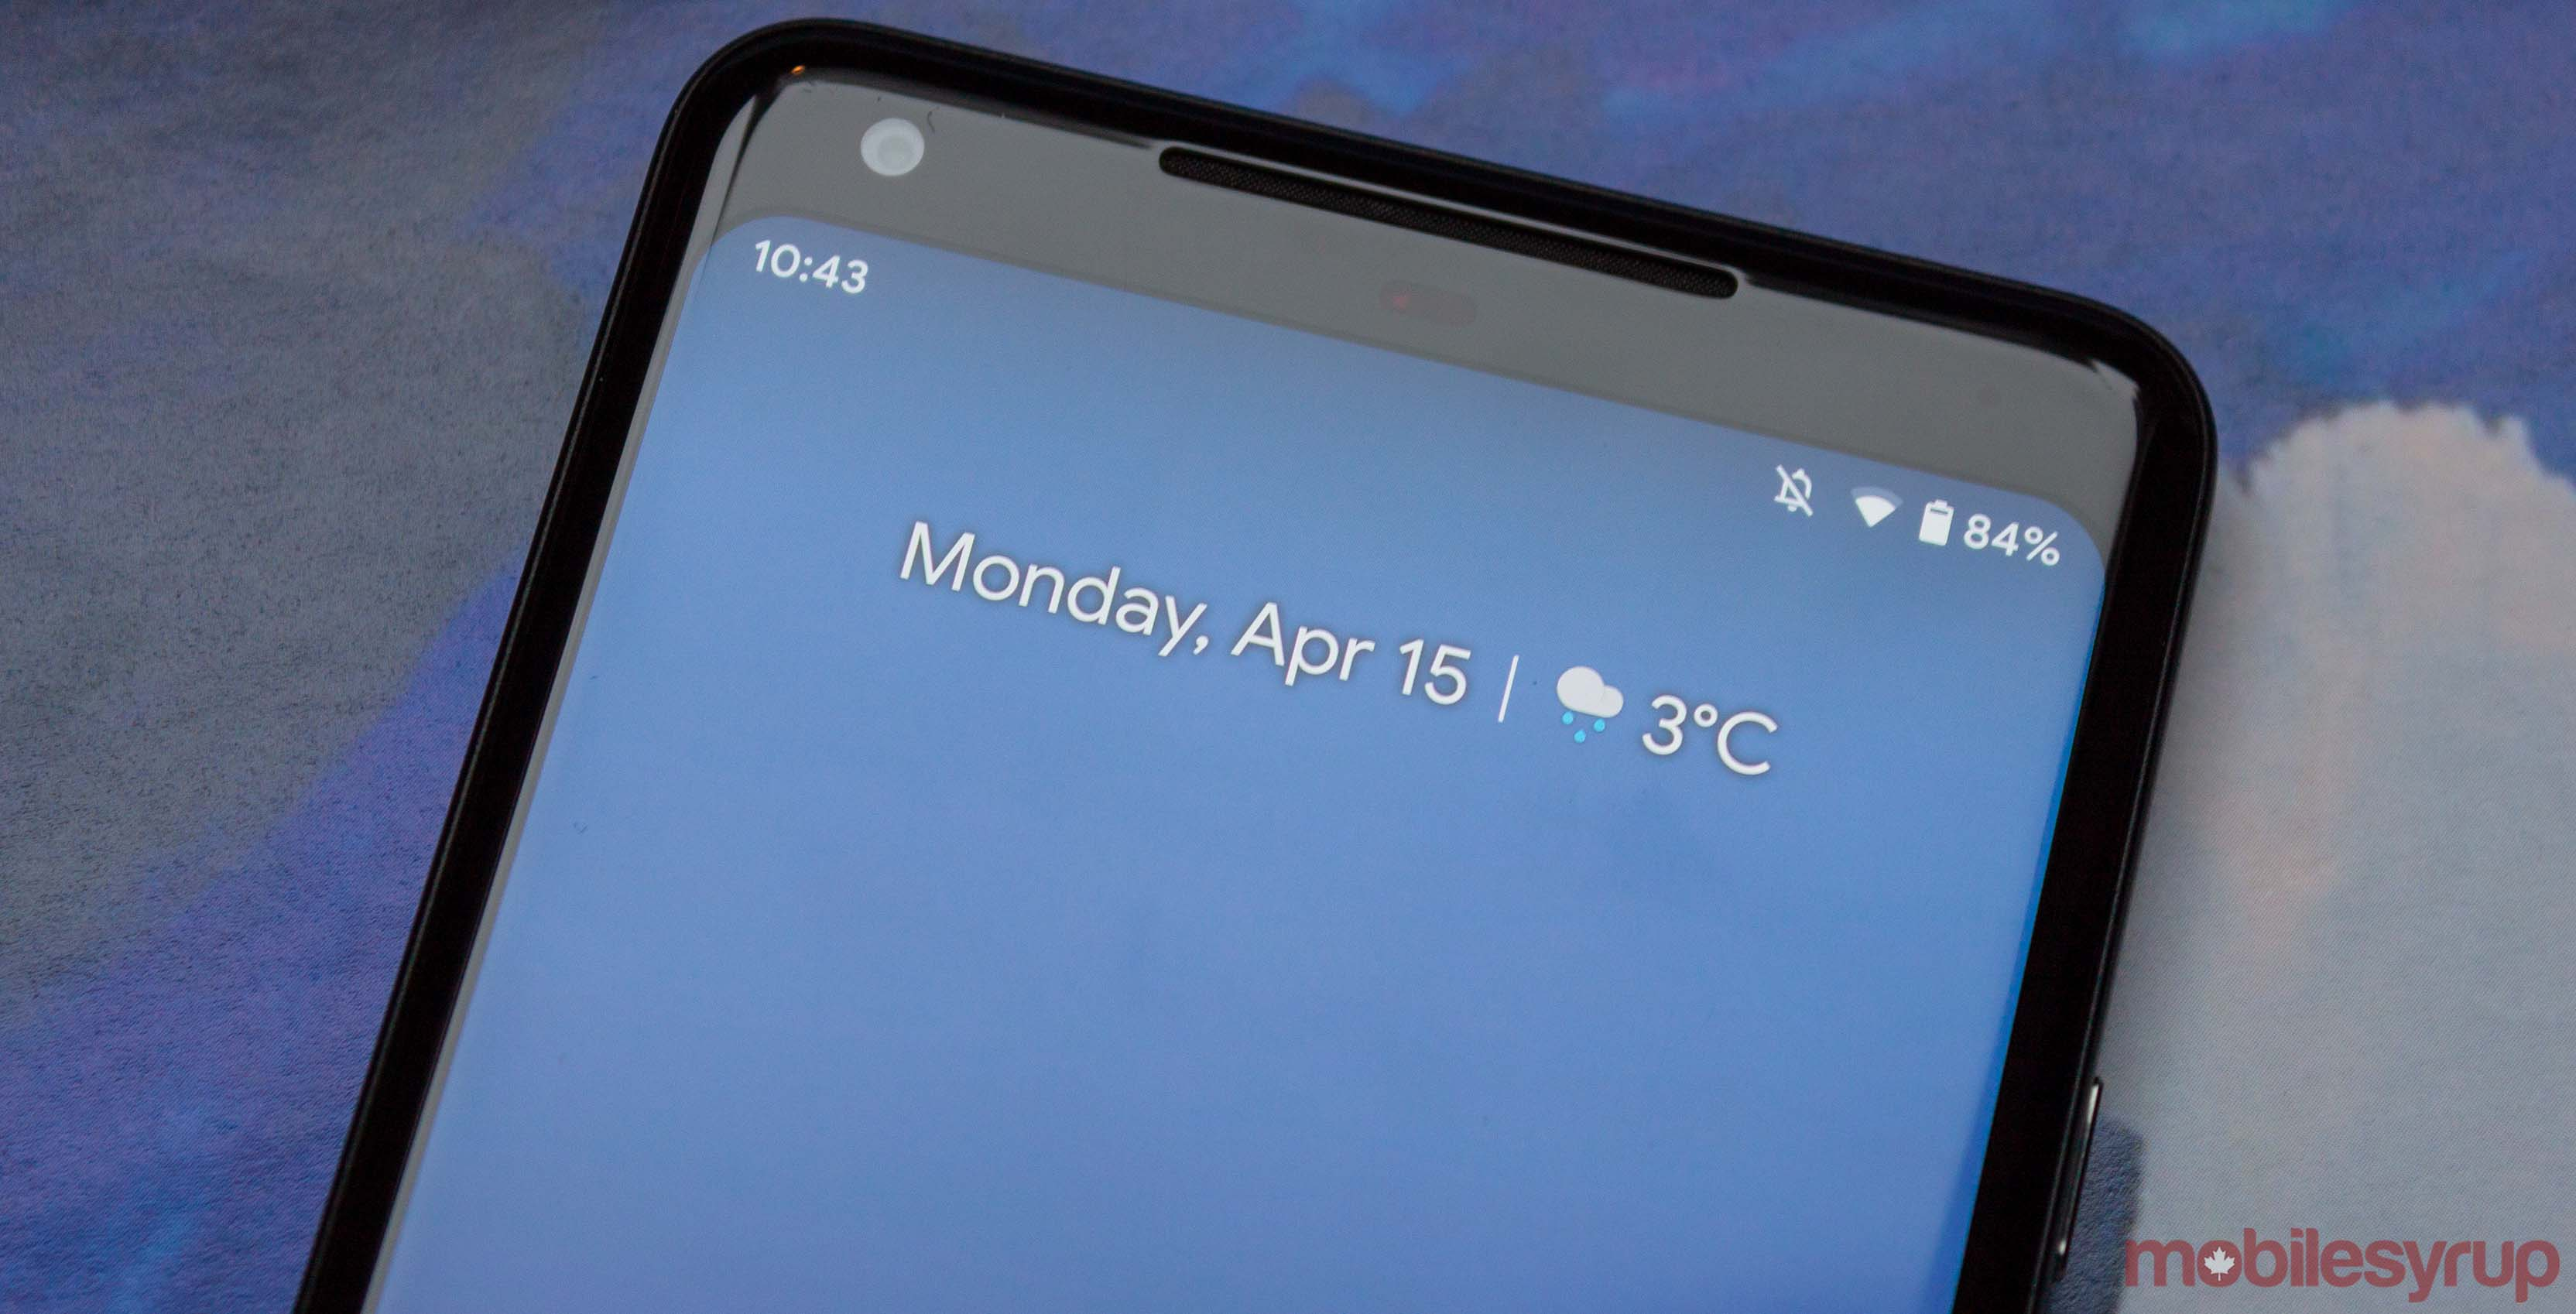 Pixel Launcher's 'At a Glance' widget gets Reminders and